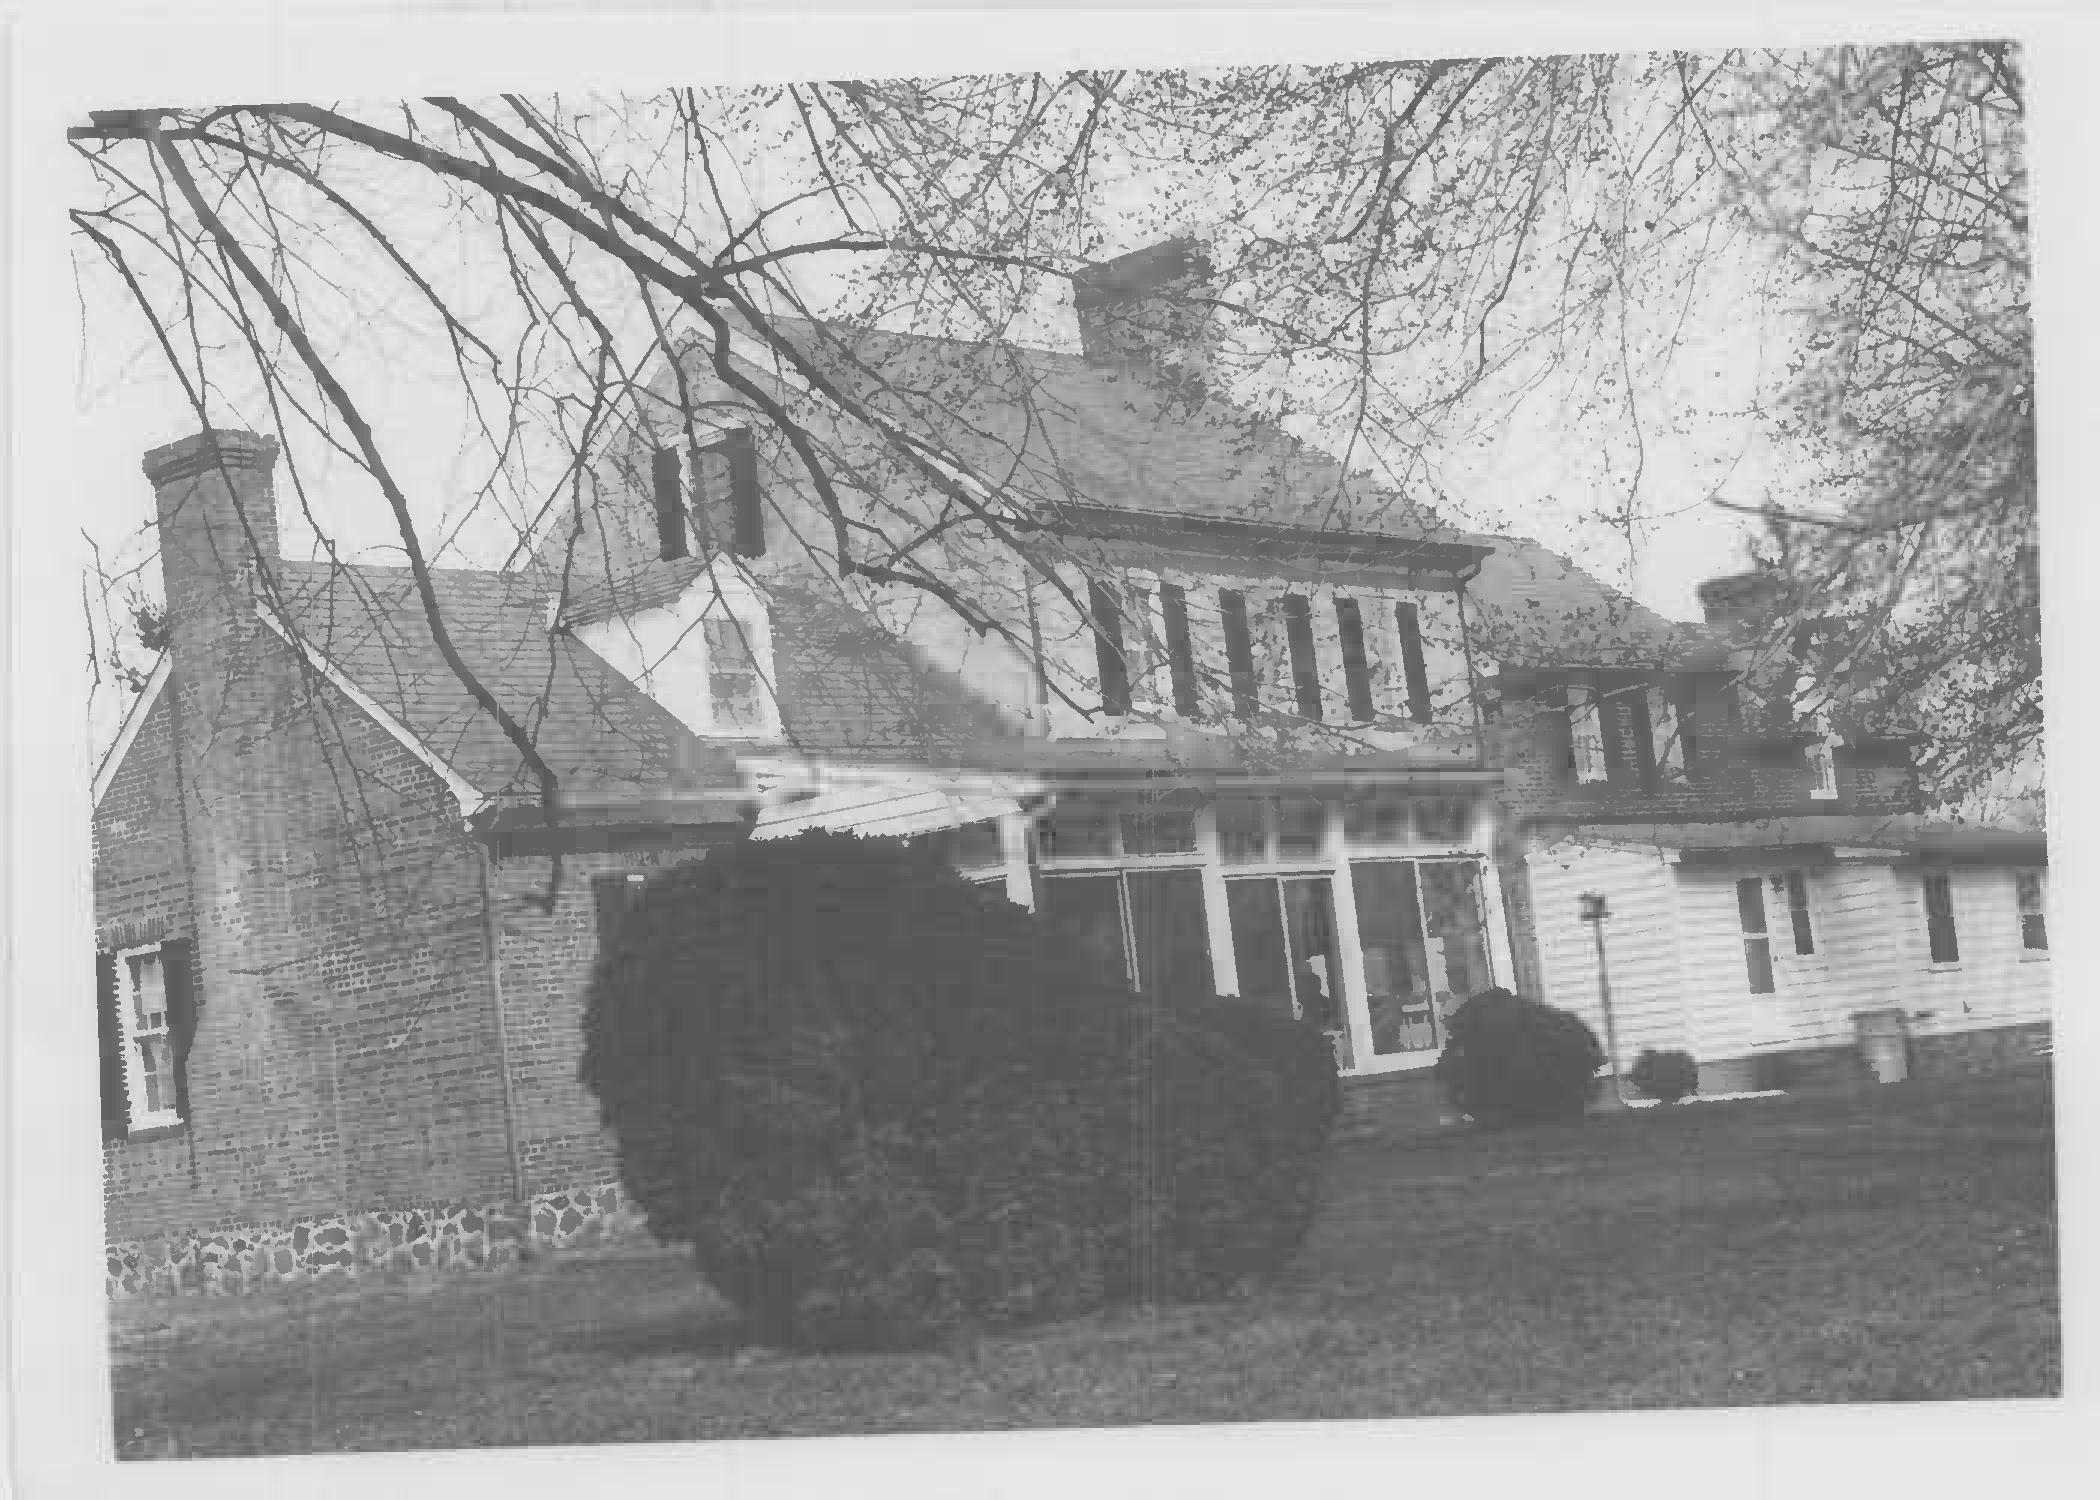 South elevation of Whites Hall in Maryland